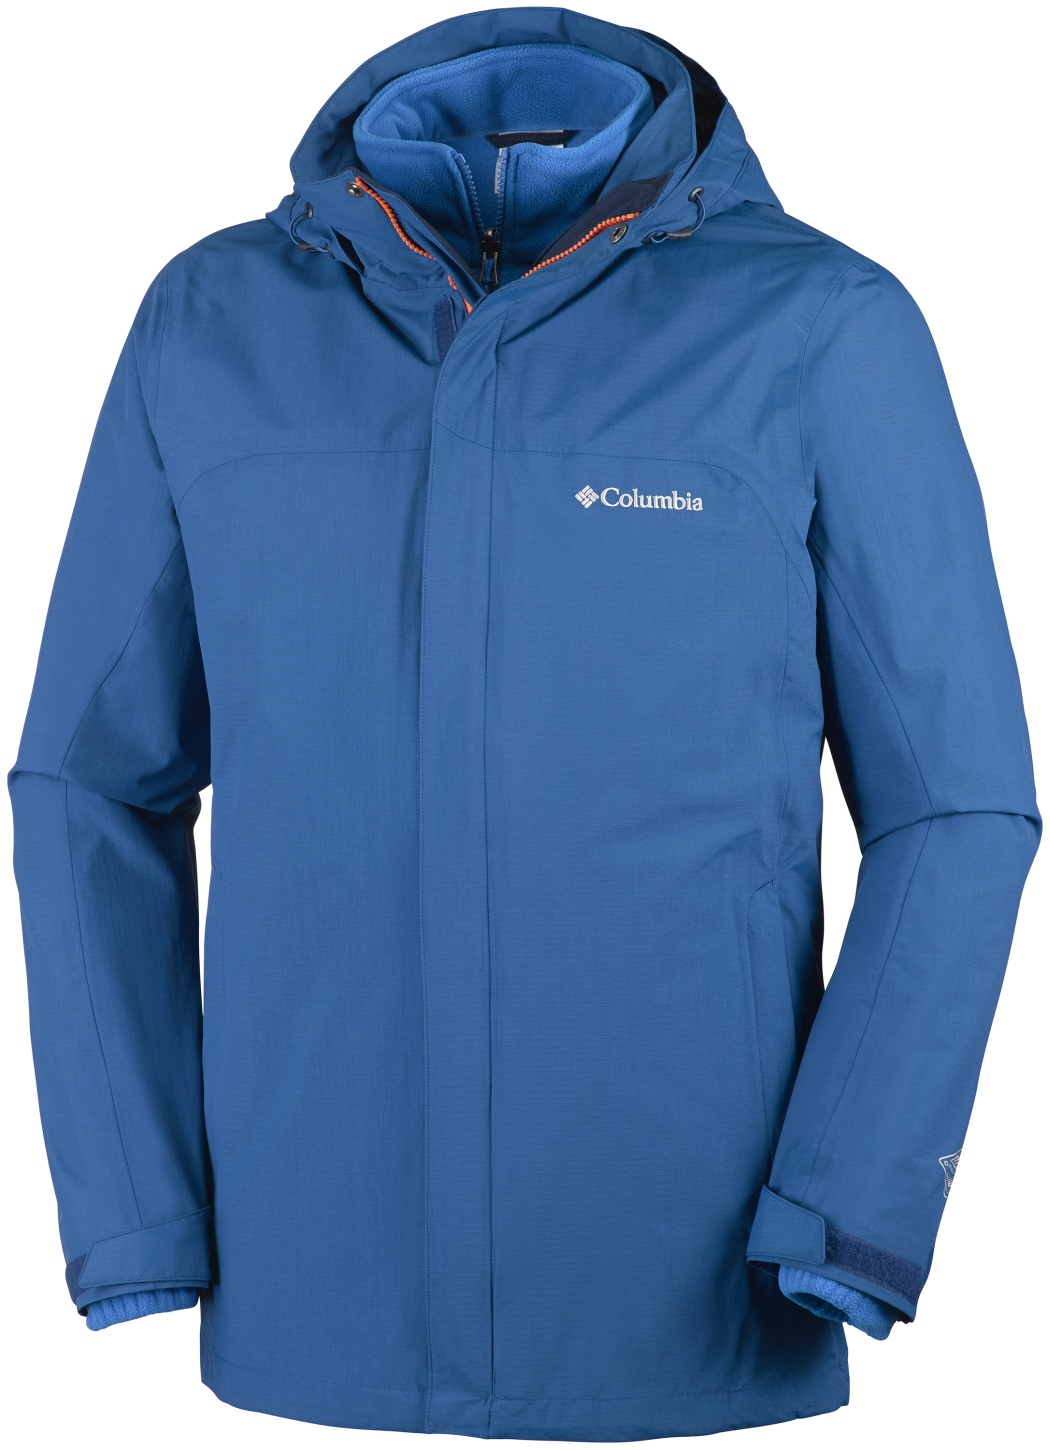 Columbia Mission Air Variable Jacke für Herren Marine Blue-30